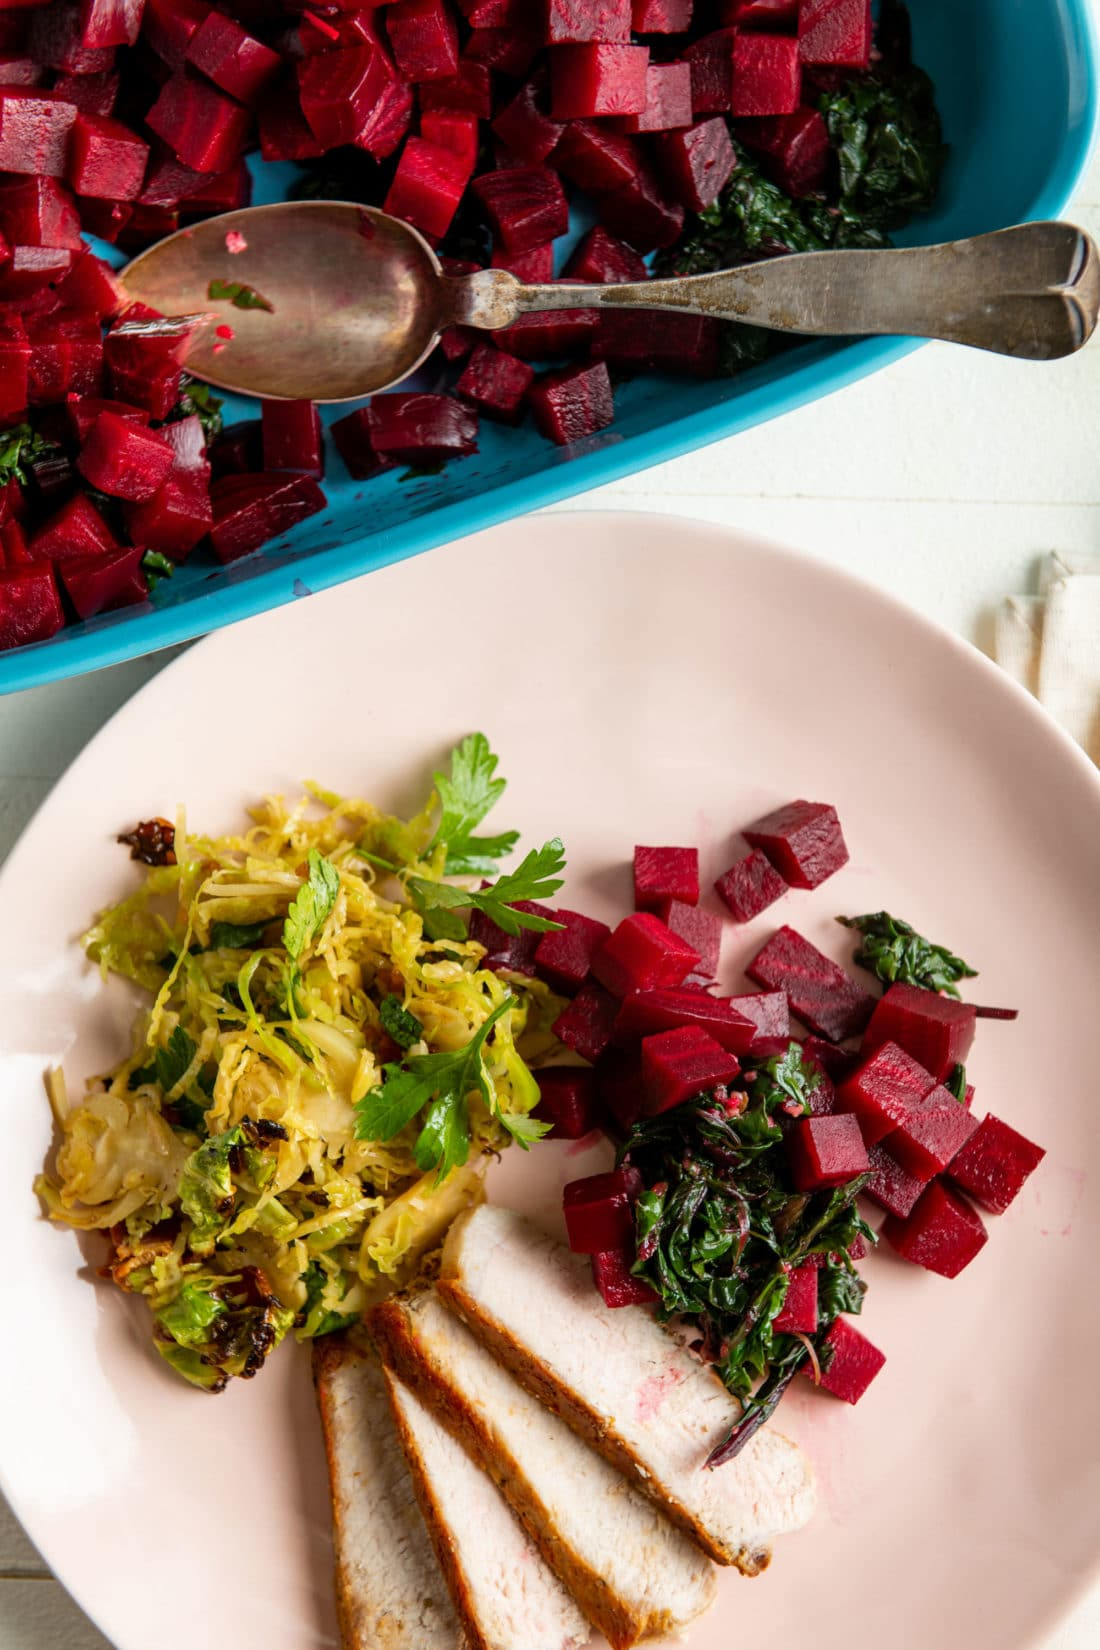 Beets and Sauteed Beet Greens